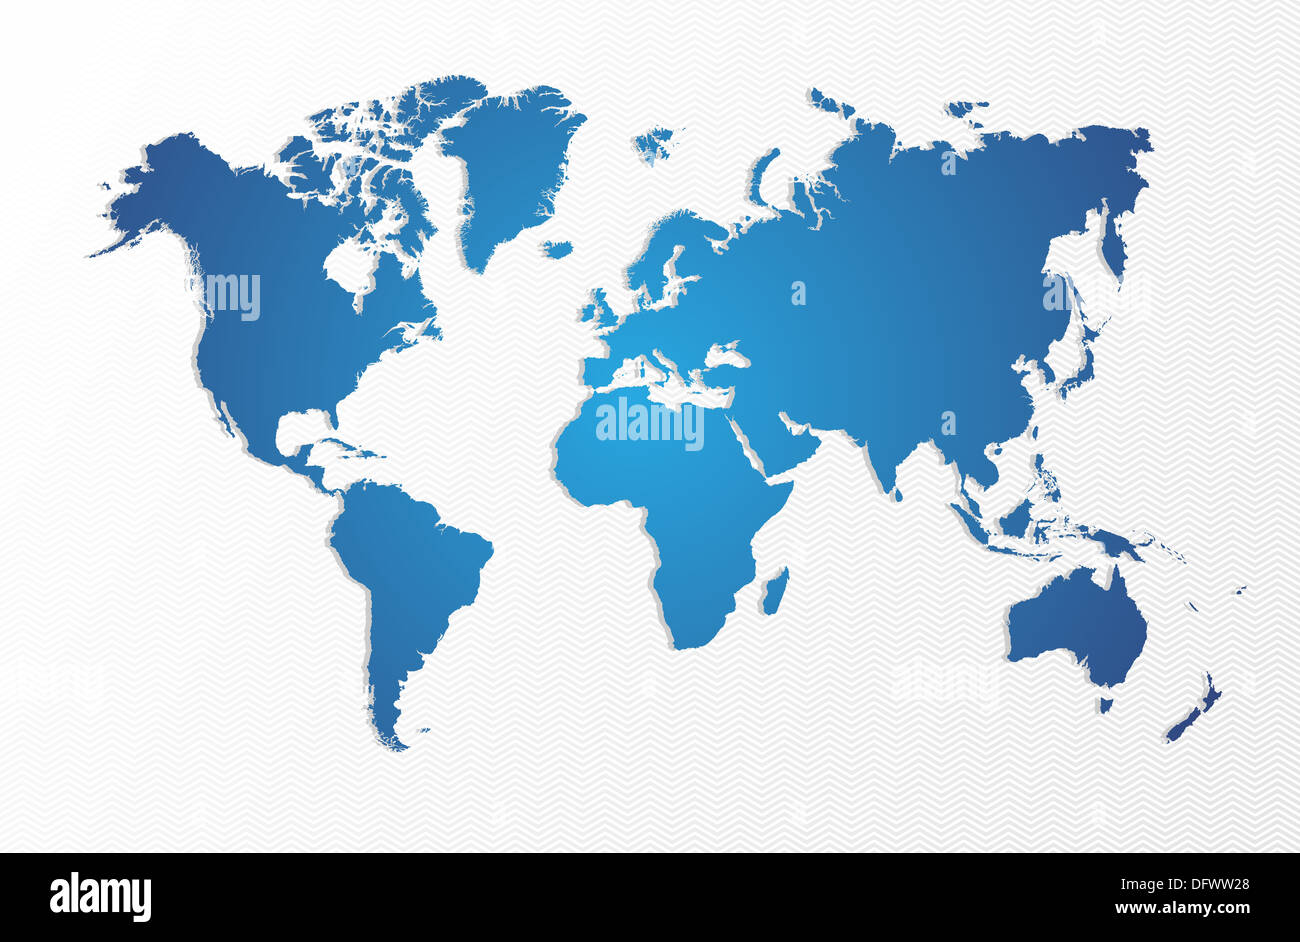 Blue World map isolated shape. EPS10 vector file organized in layers for easy editing. - Stock Image